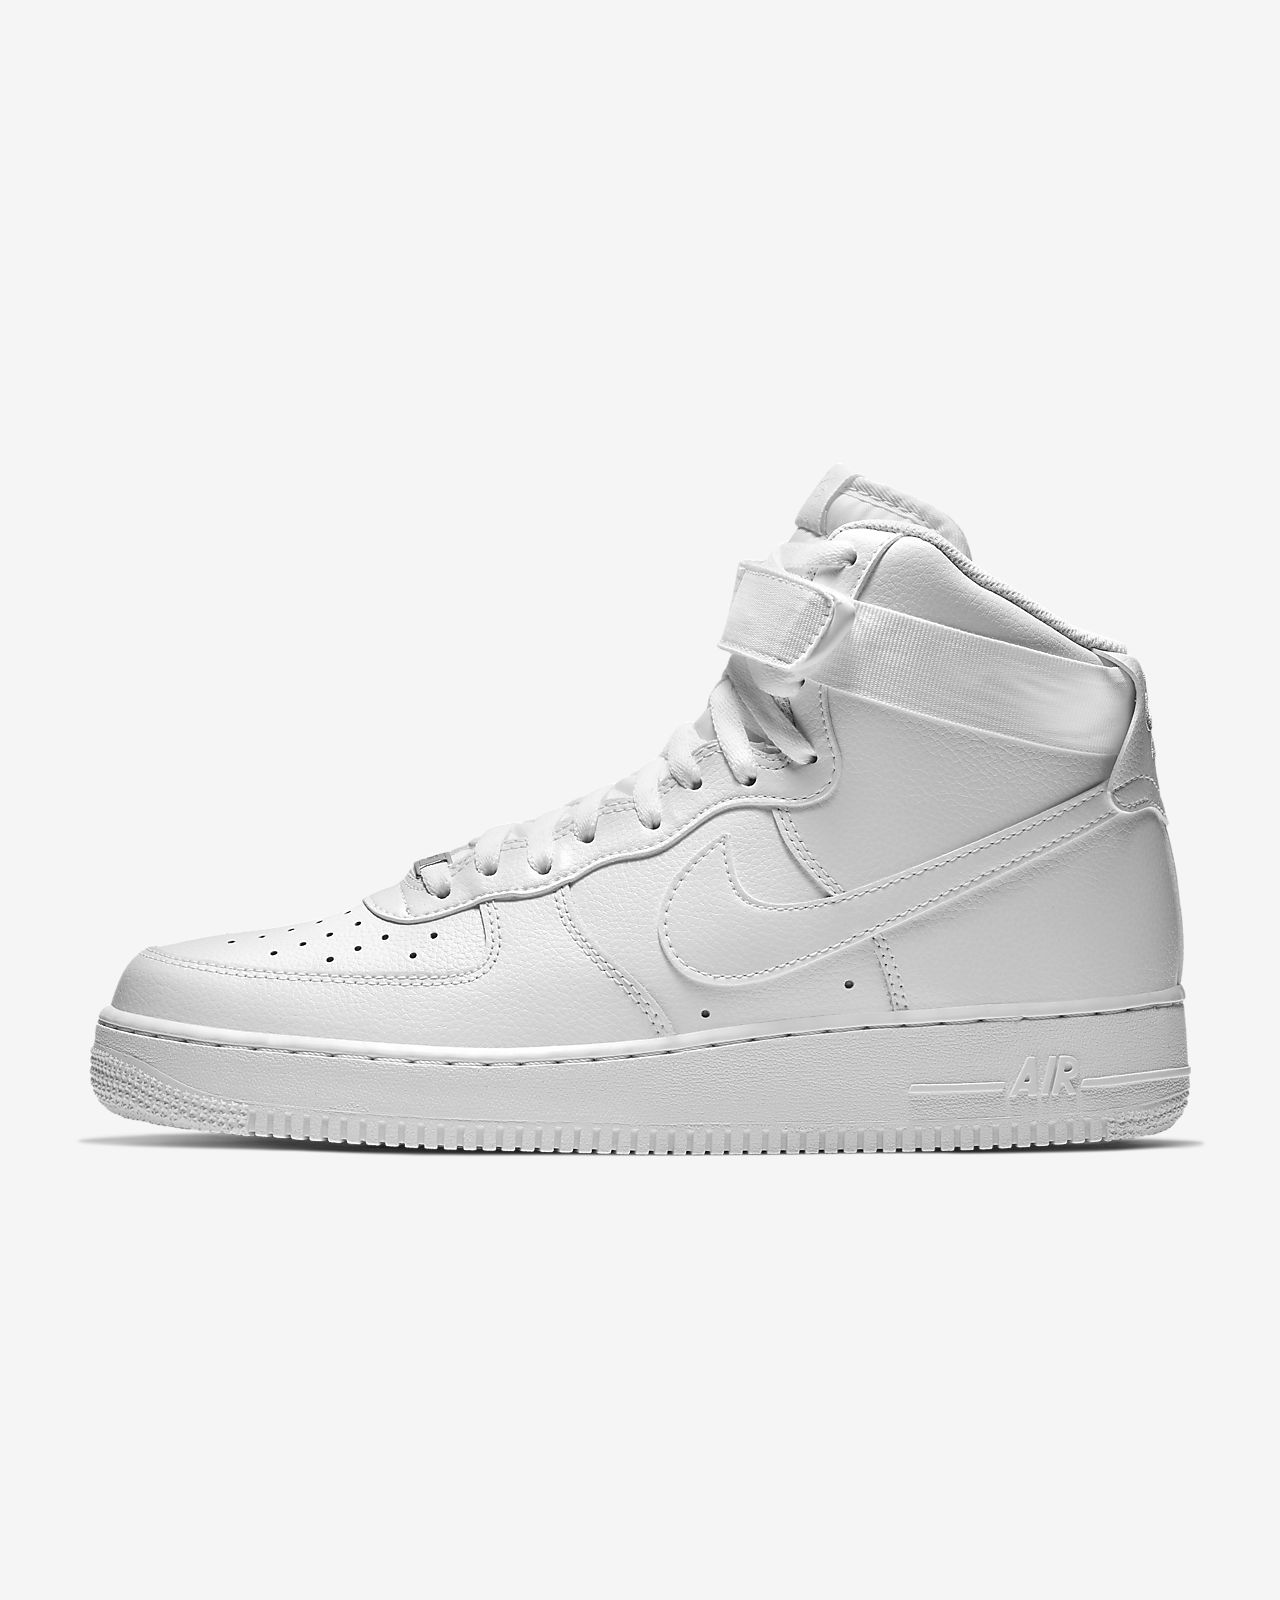 4de4538f6f6 Nike Air Force 1 High 07 Men s Shoe. Nike.com